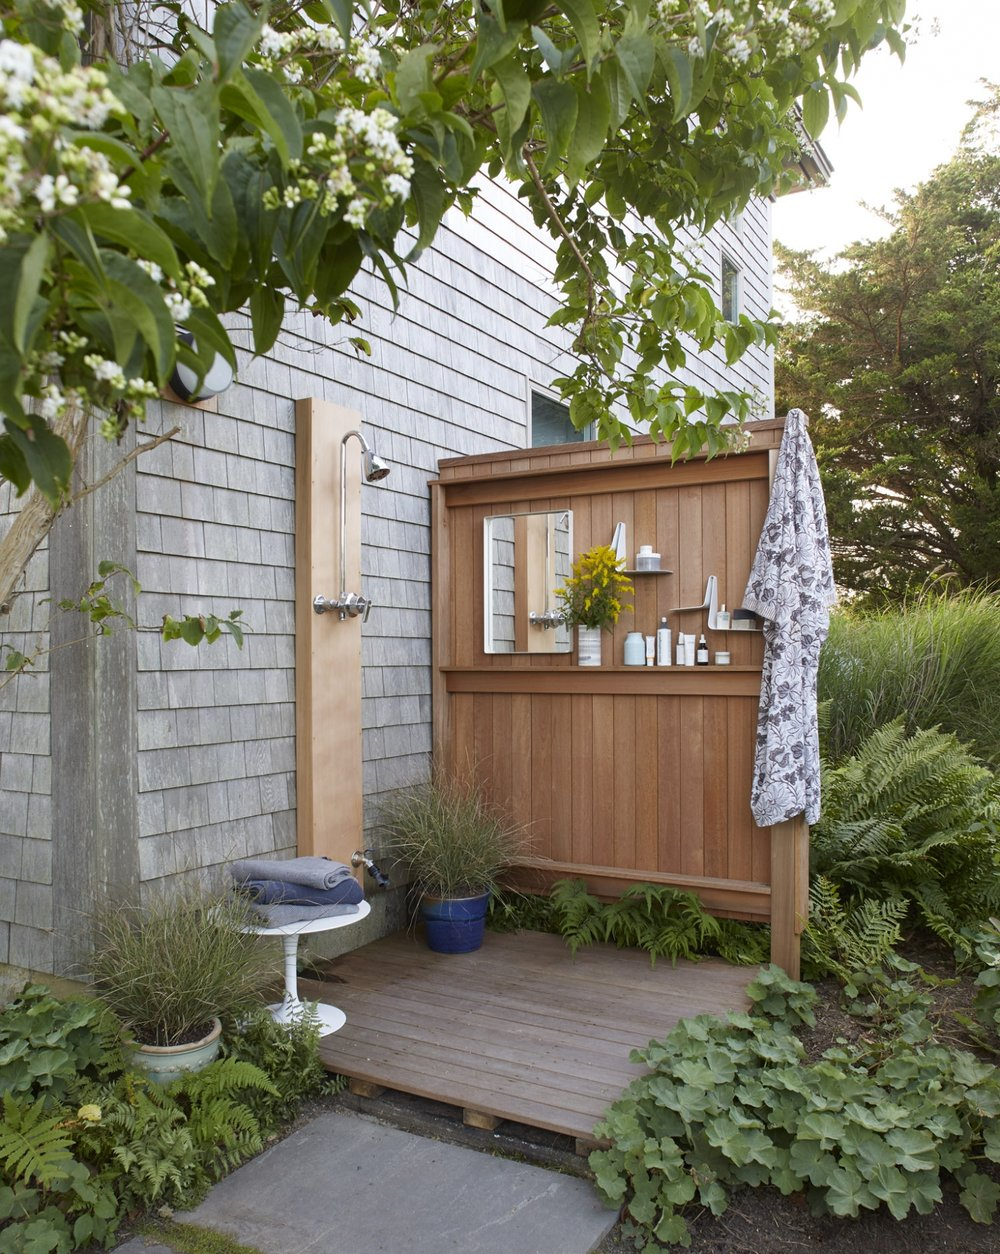 outdoor-shower-chilmark-cottage-garden-1466x1838.jpg